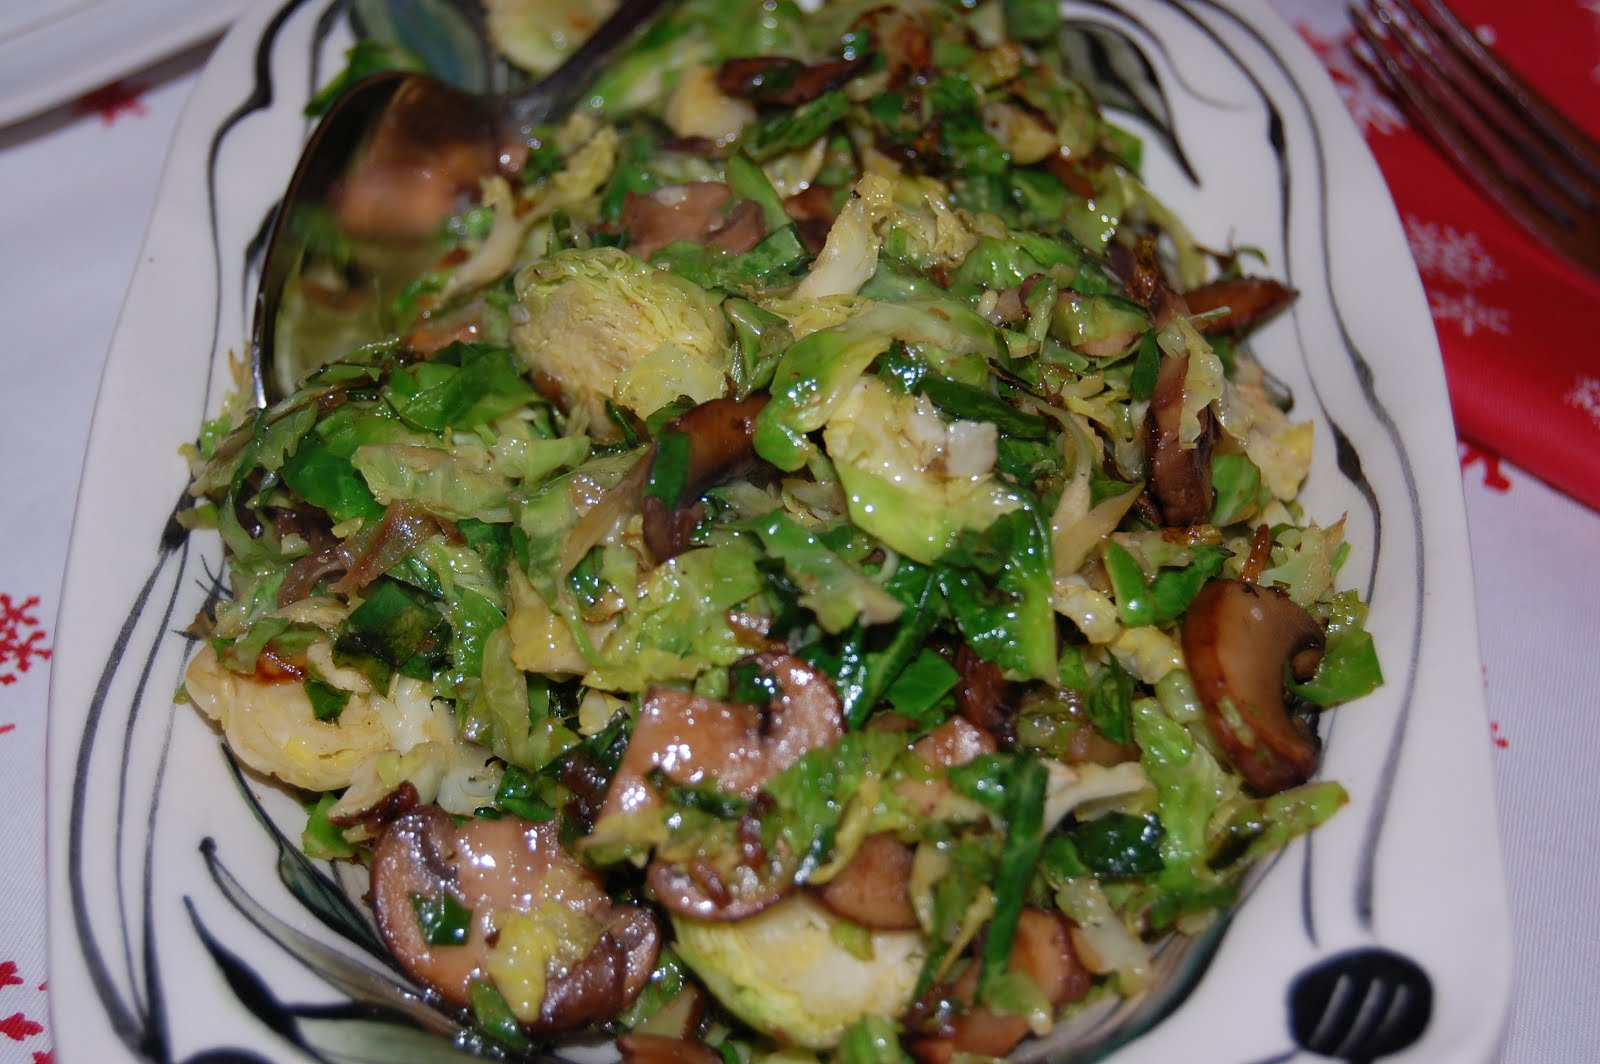 KnitOne,PearlOnion: Sautéed Brussels Sprouts